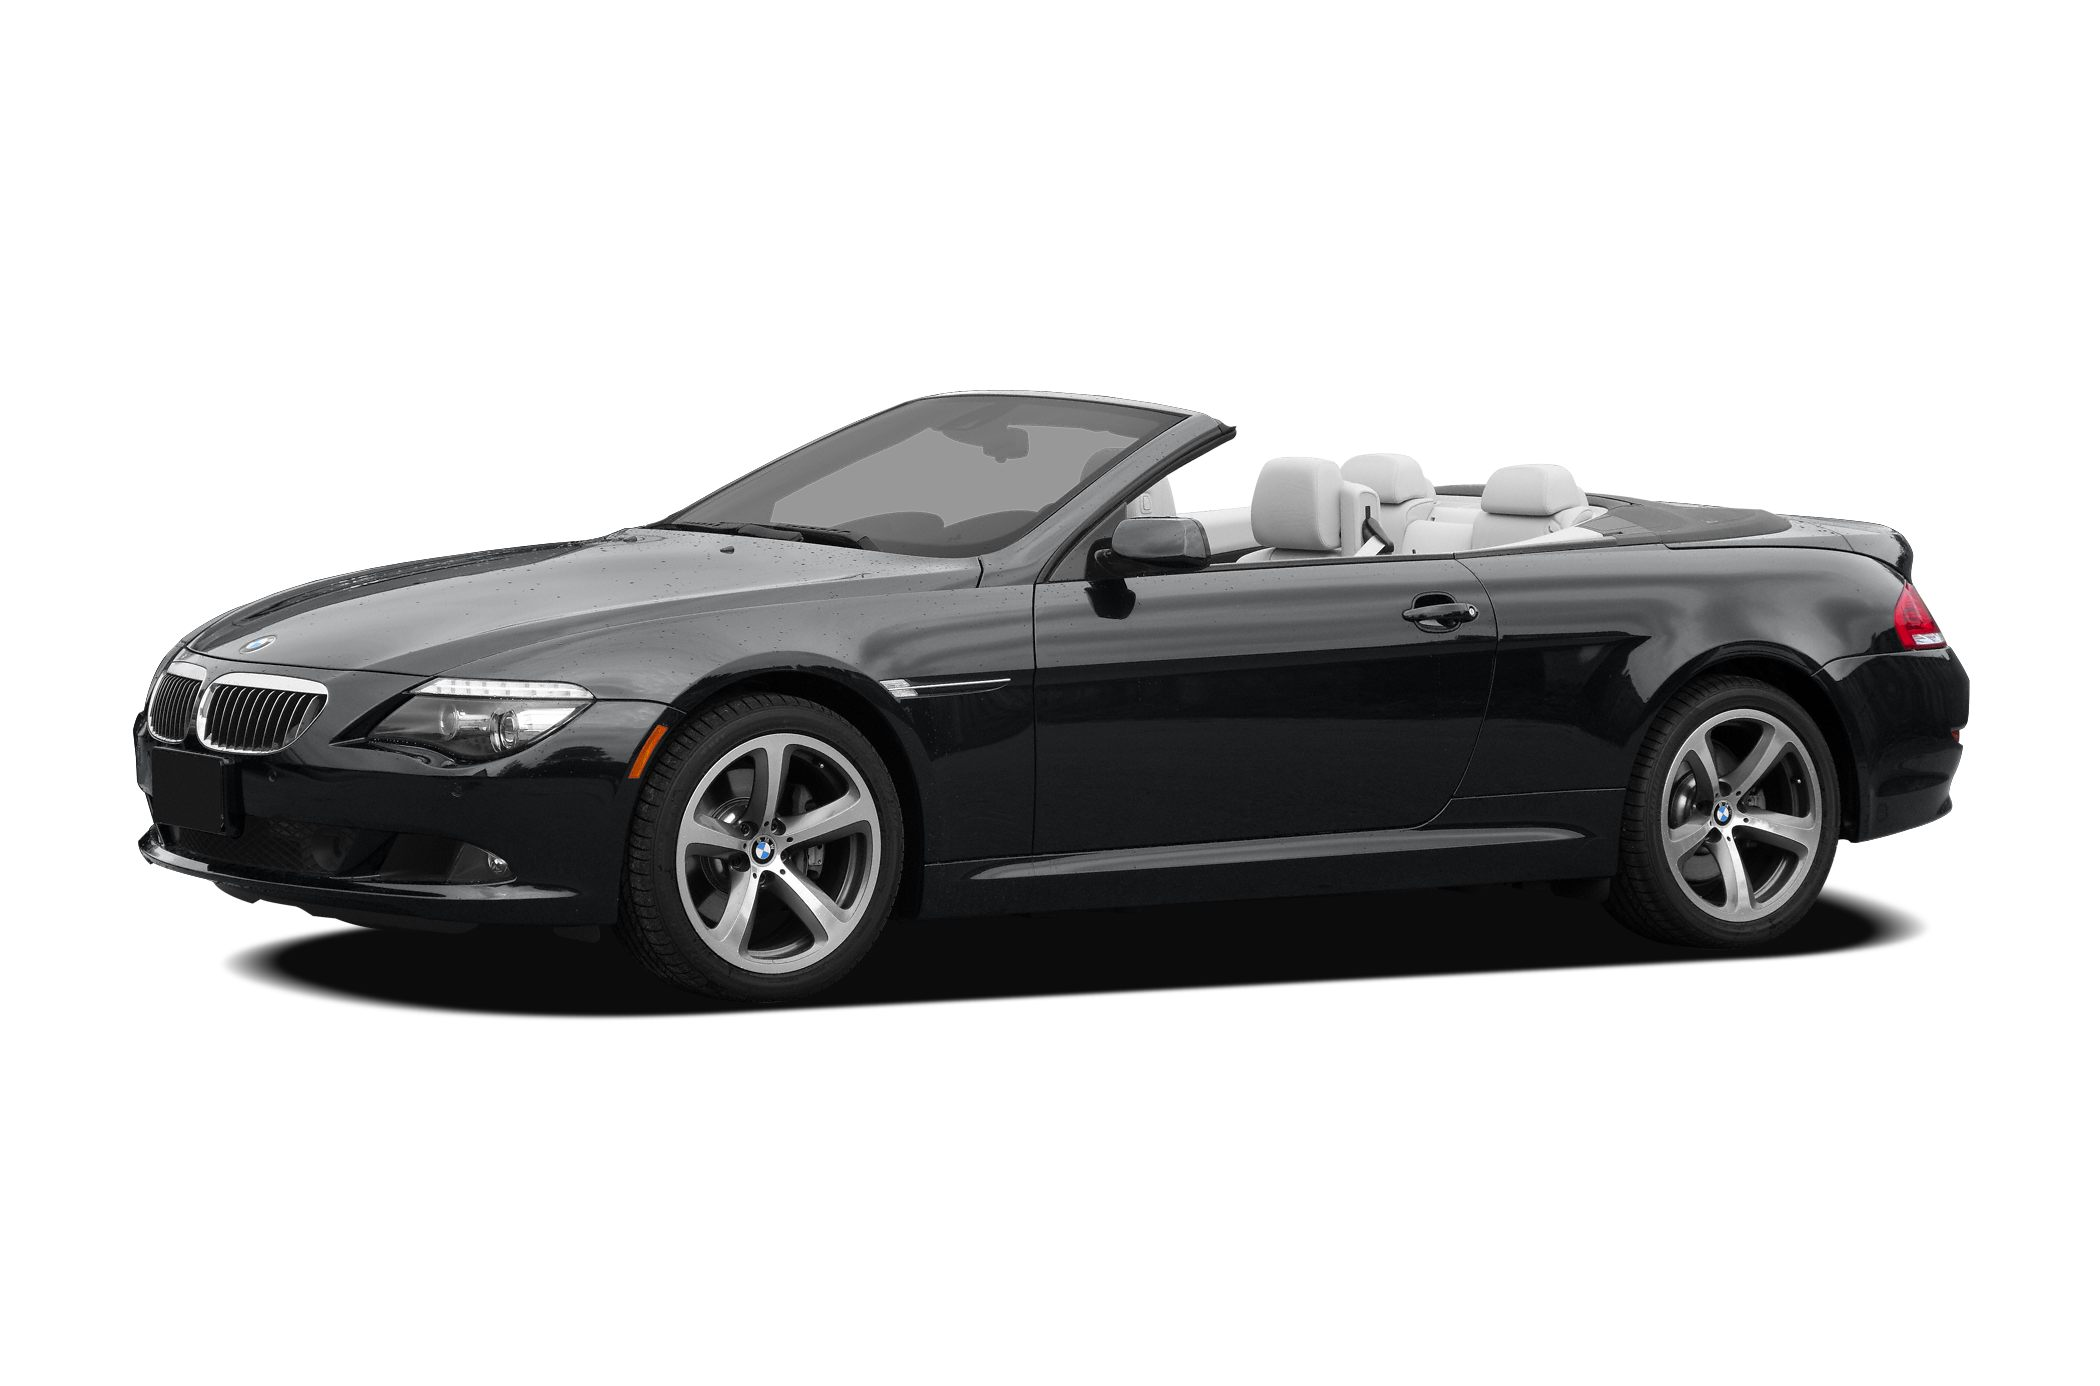 2008 BMW 6 Series 650i Just Arrived This car sparkles You wont find a better Vehicle than thi